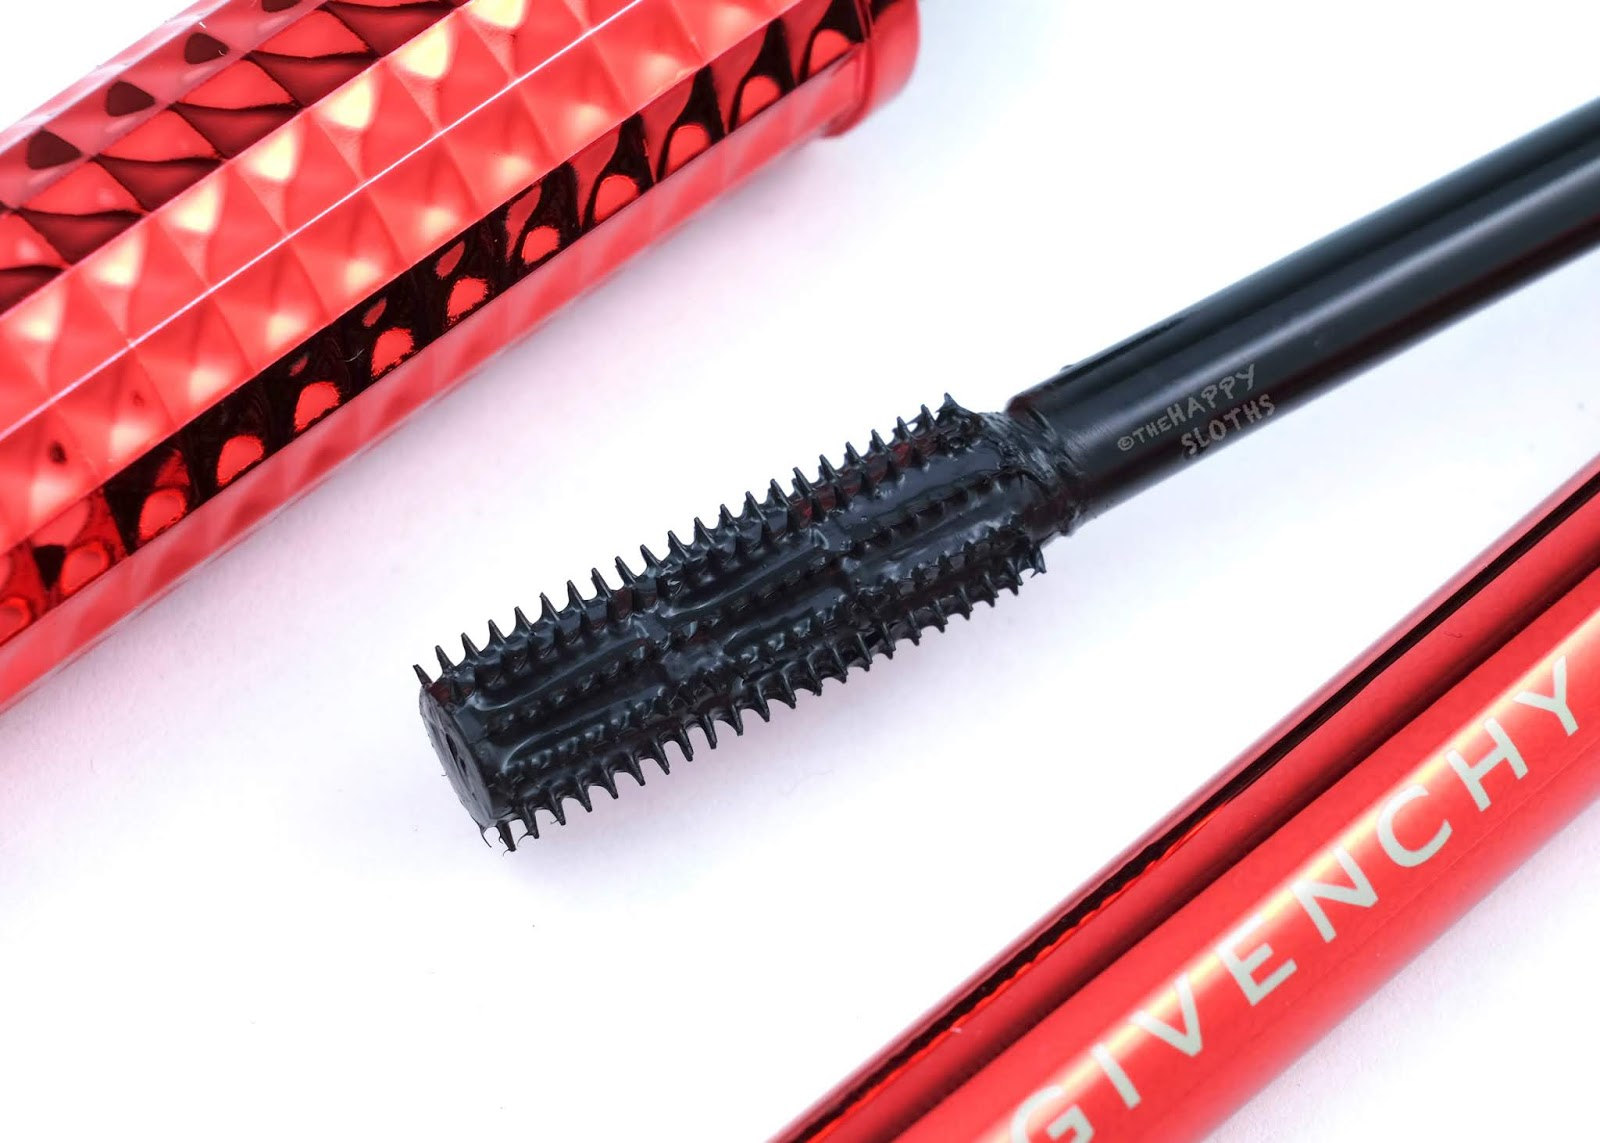 Givenchy   Volume Disturbia Mascara: Review and Swatches